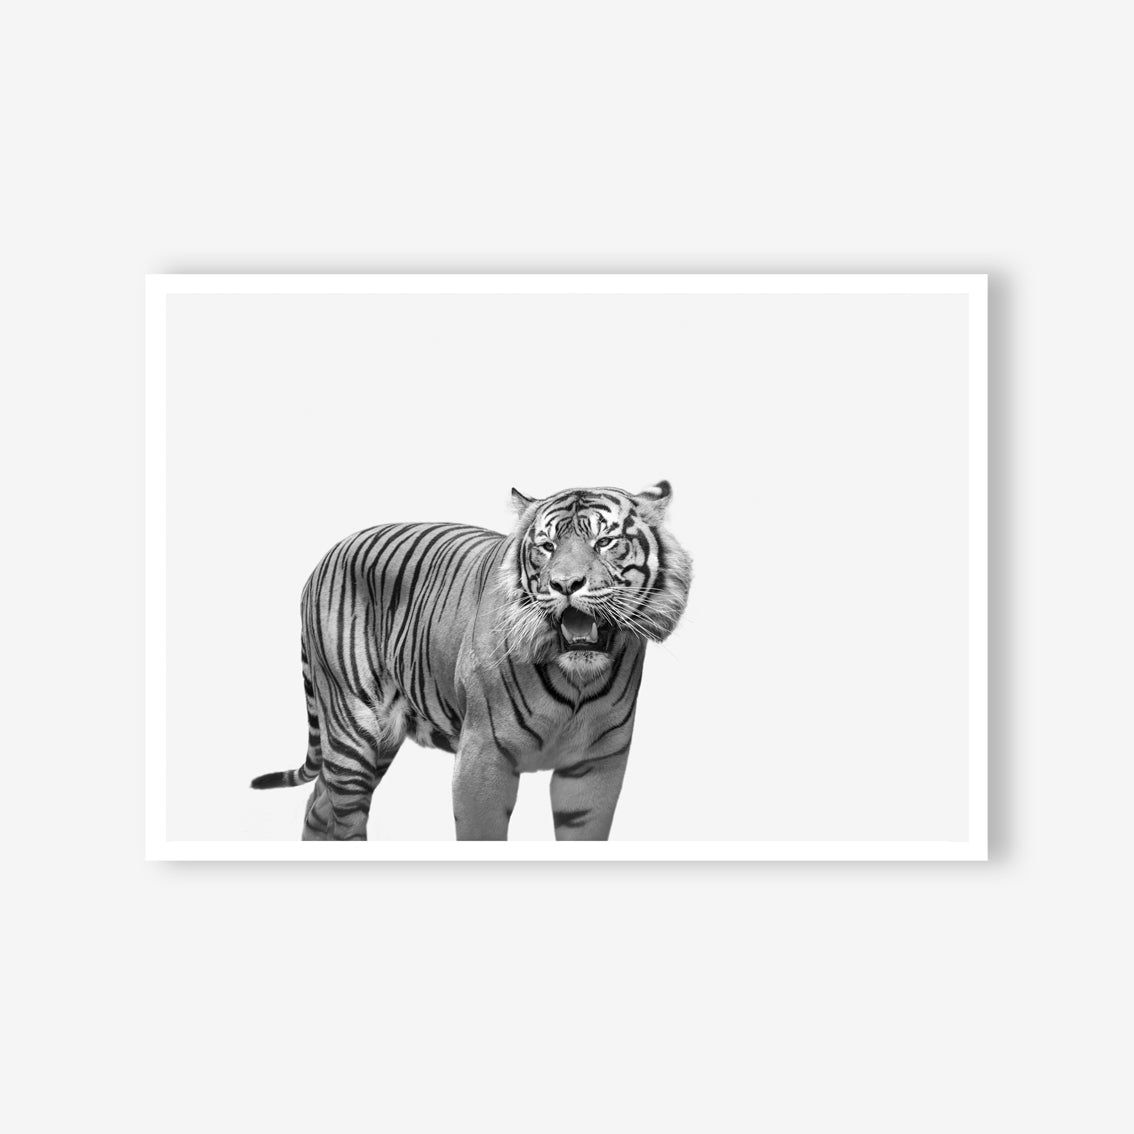 Tiger wall art print black and white animal photography